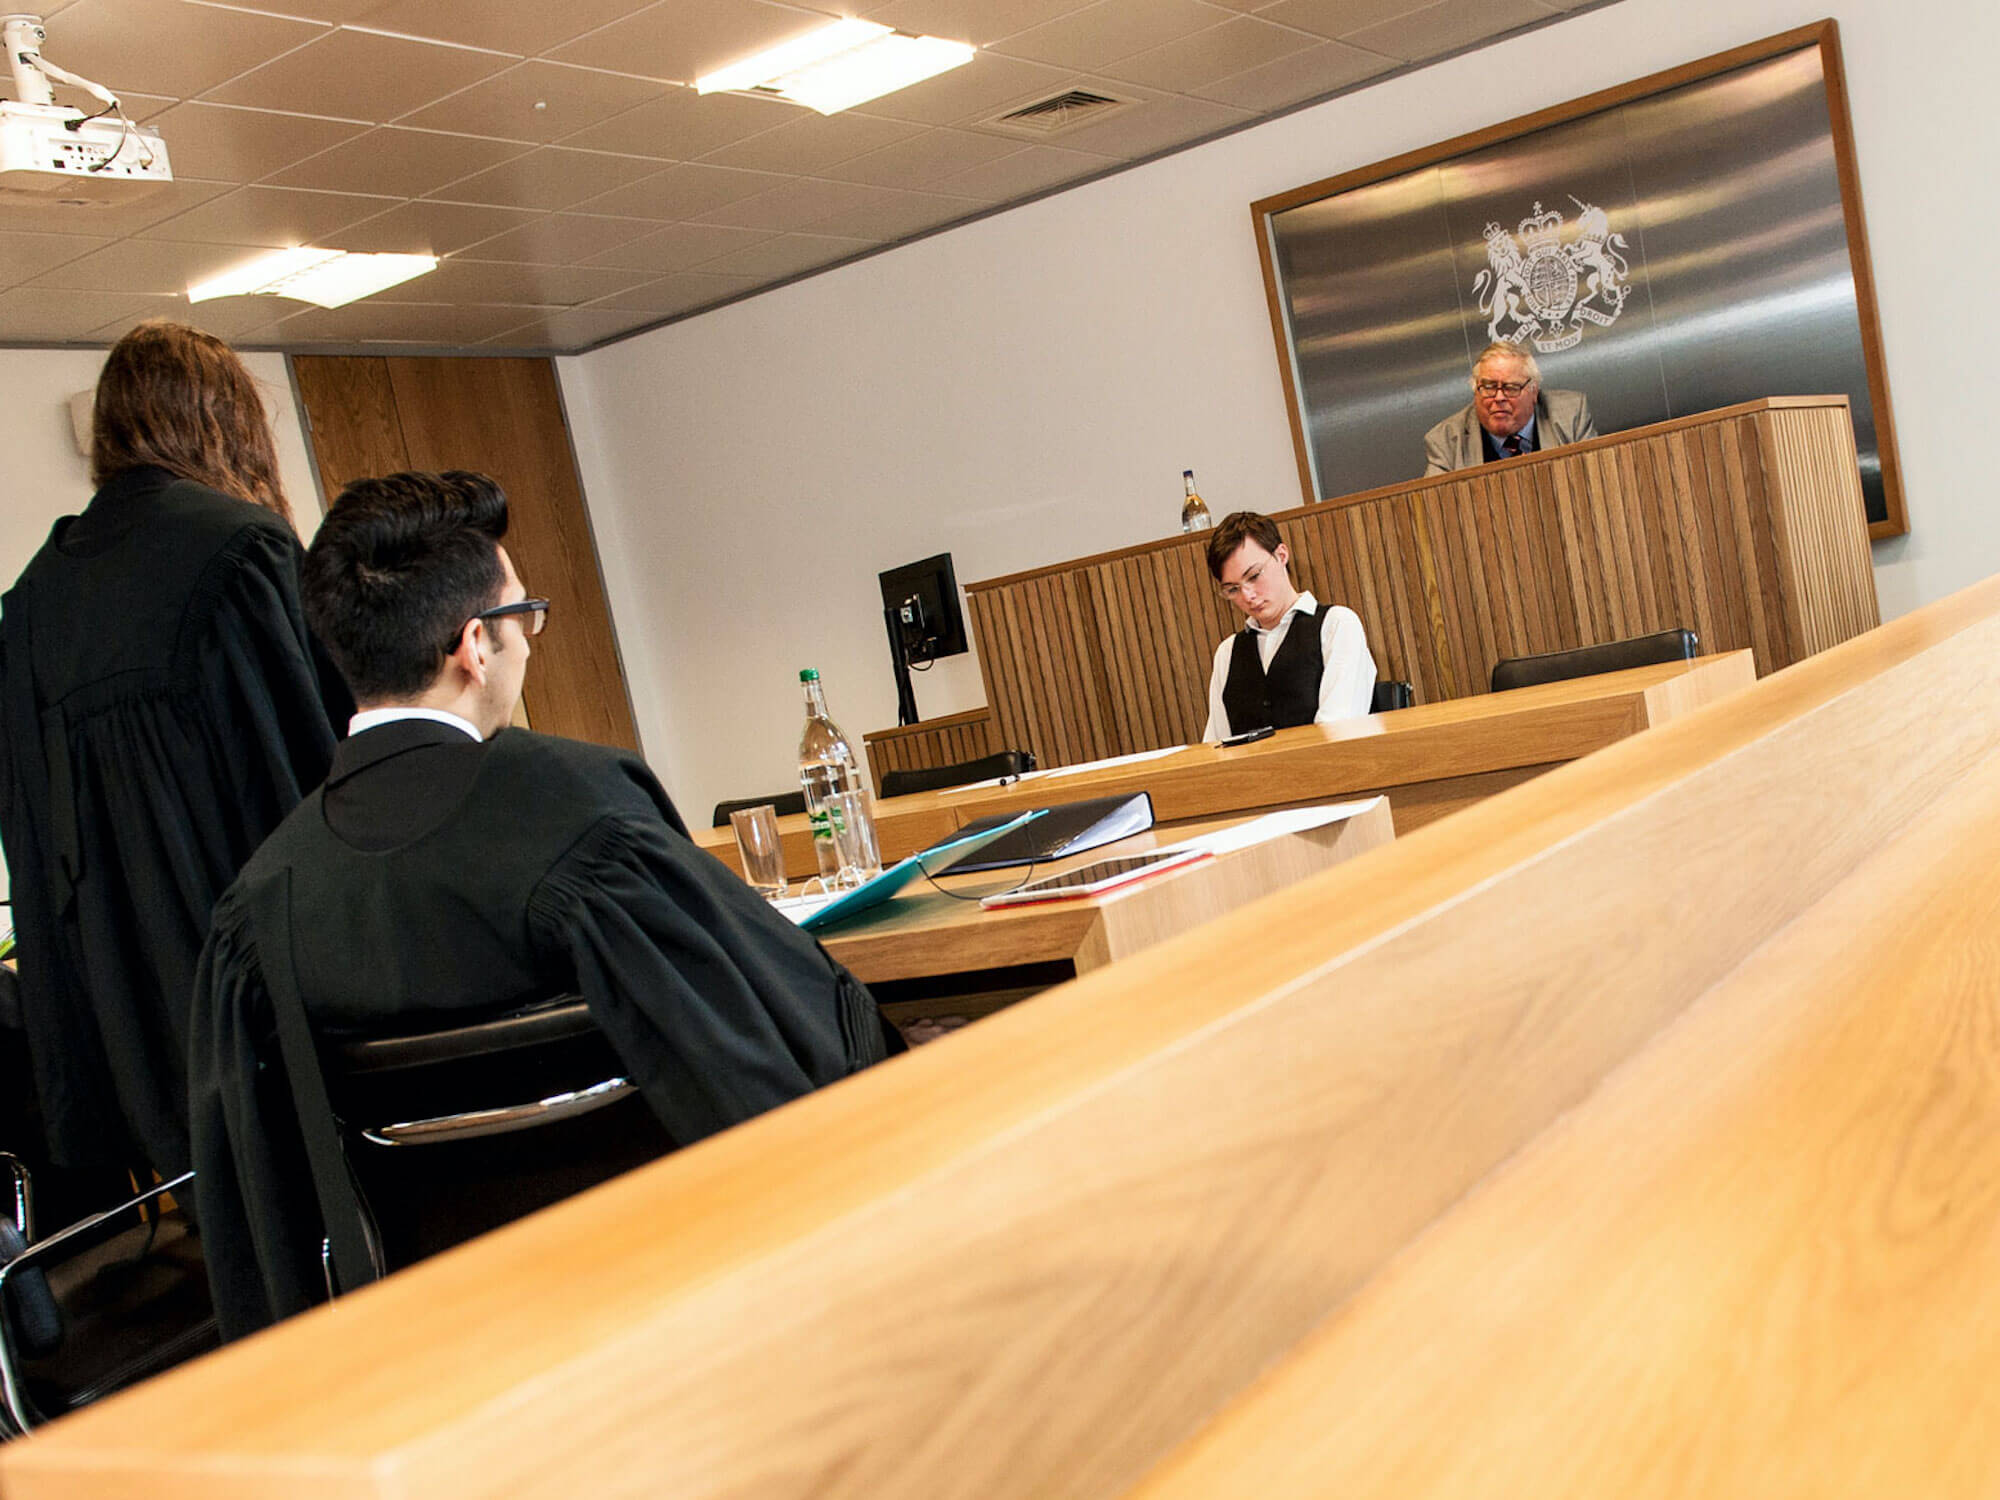 A 360 view of the University of Derby's mock Crown Courtroom at One Friar Gate Square